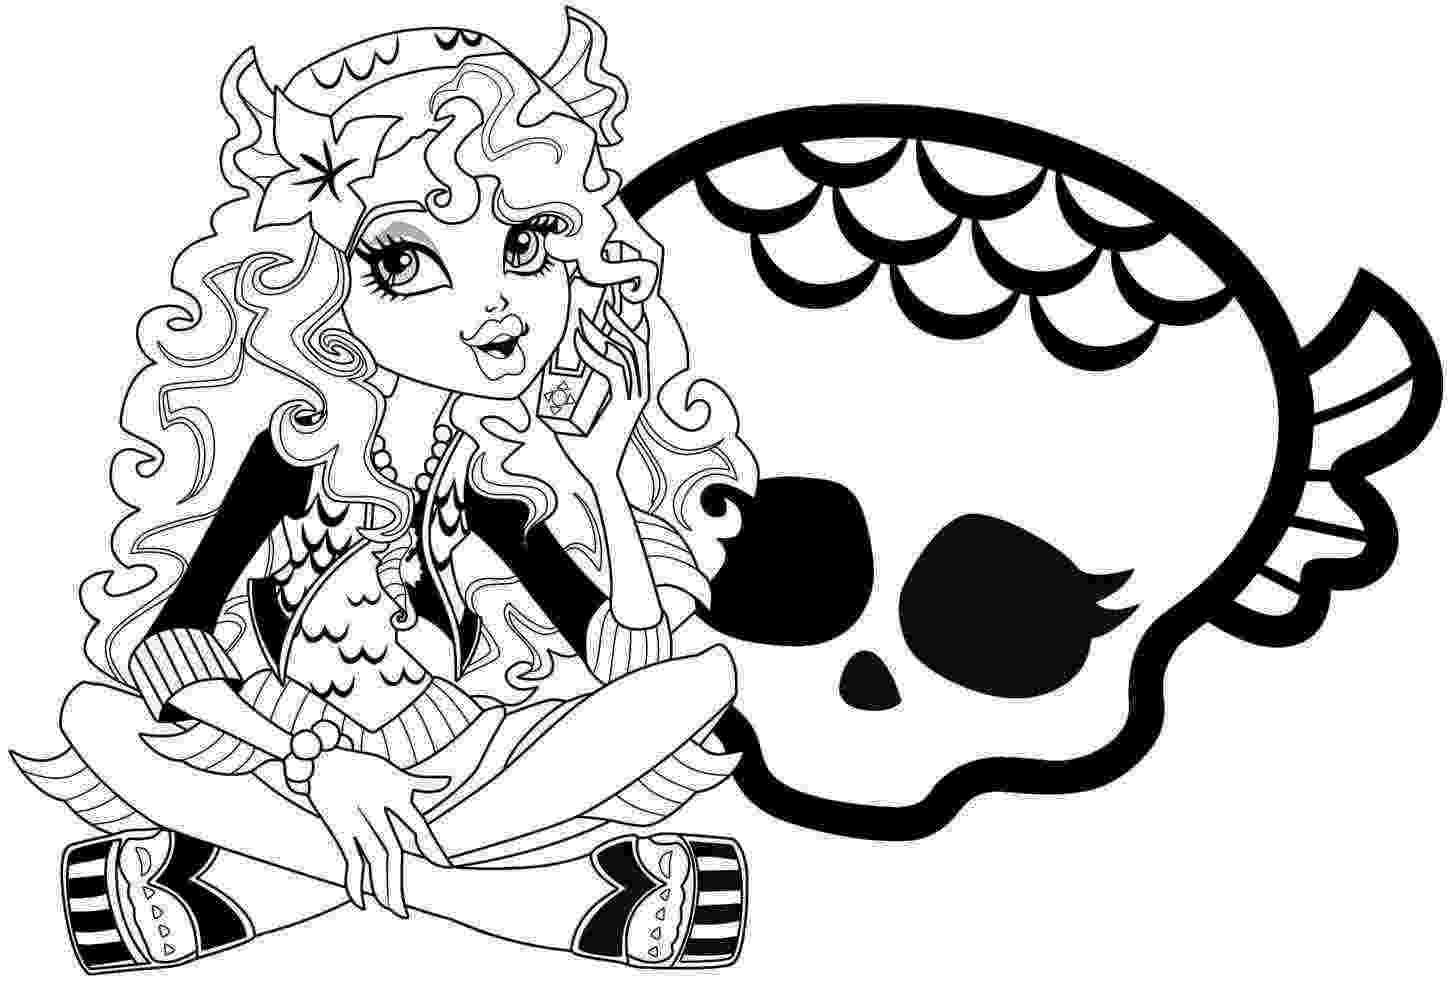 free colouring pages monster high coloring pages monster high page 2 printable coloring free monster colouring pages high